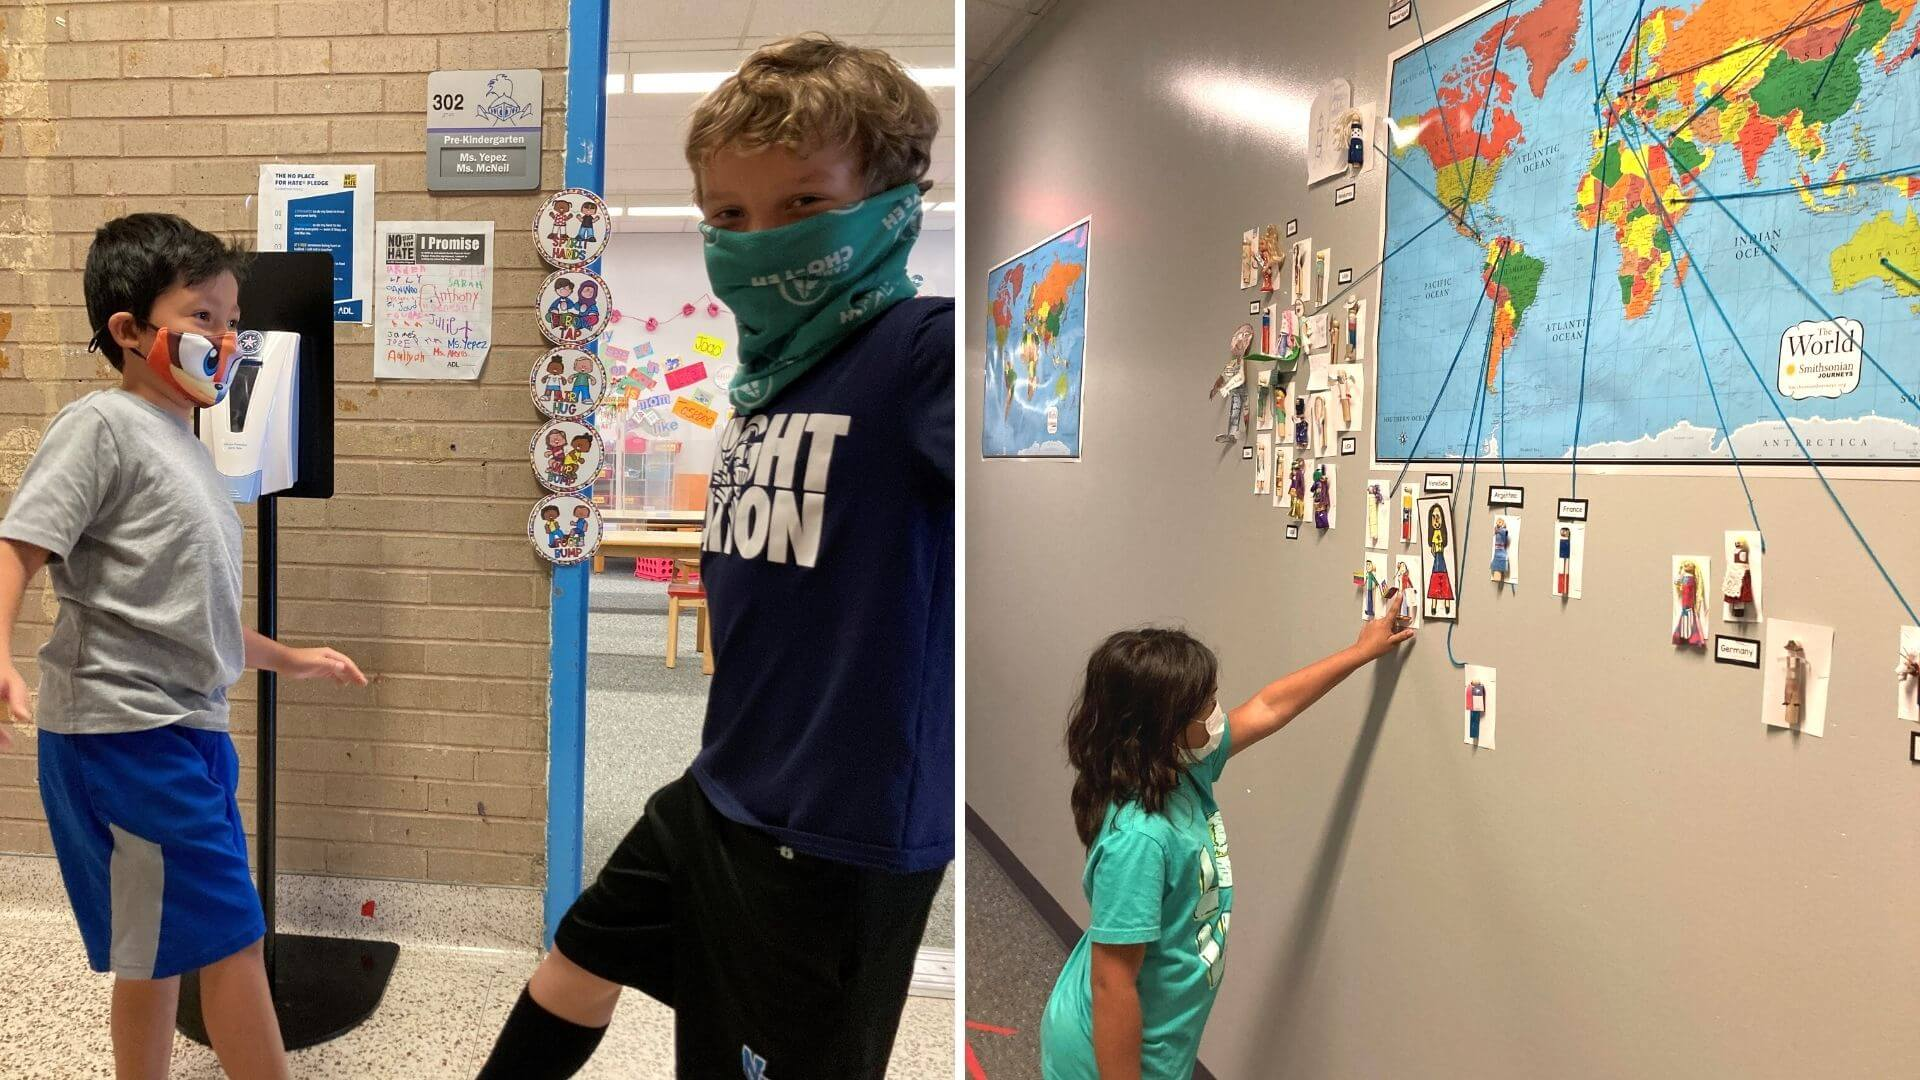 Two pictures side-by-side: On left, two students touch feet and look at the camera wearing masks. On right, a student touches a wall where a map is.